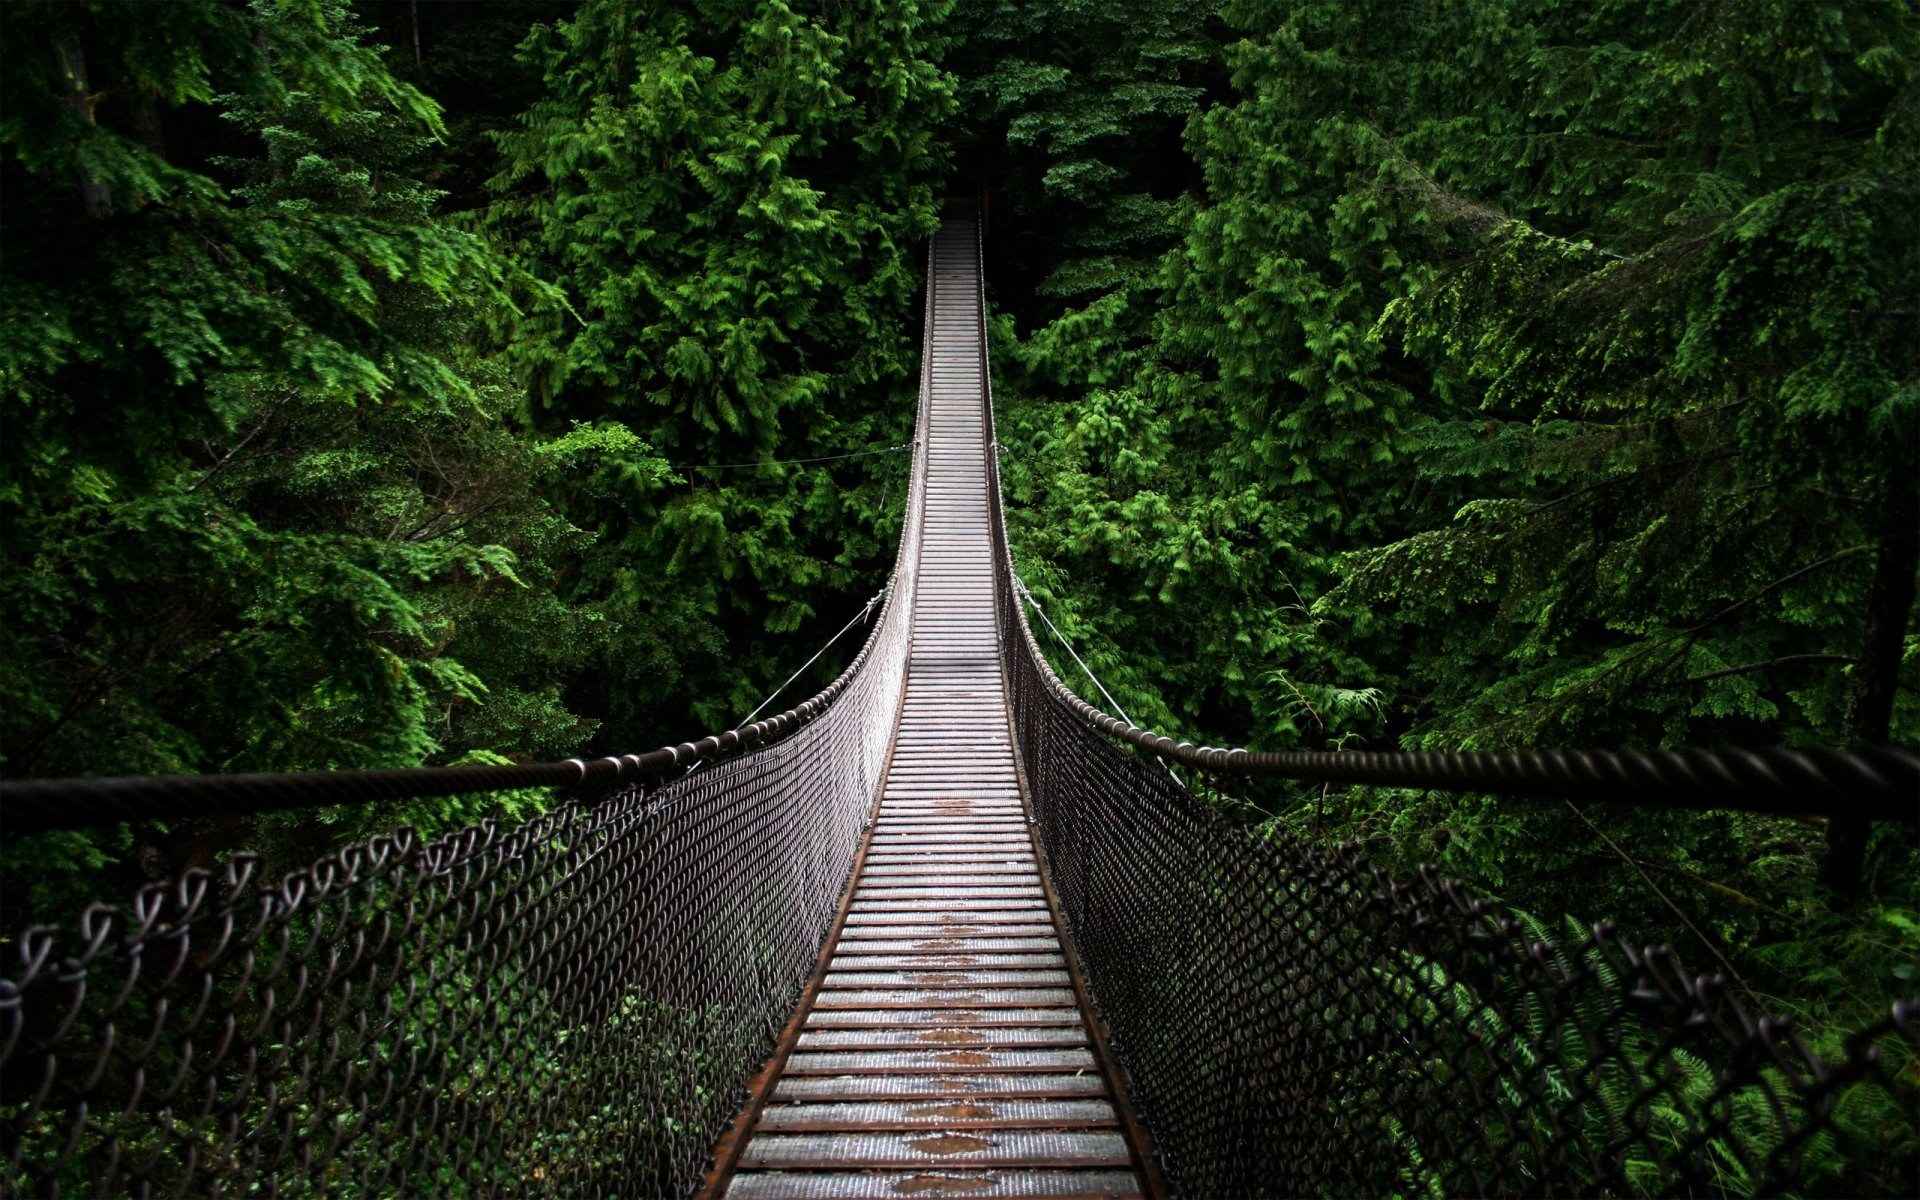 Man Made - Bridge  Forest Wallpaper